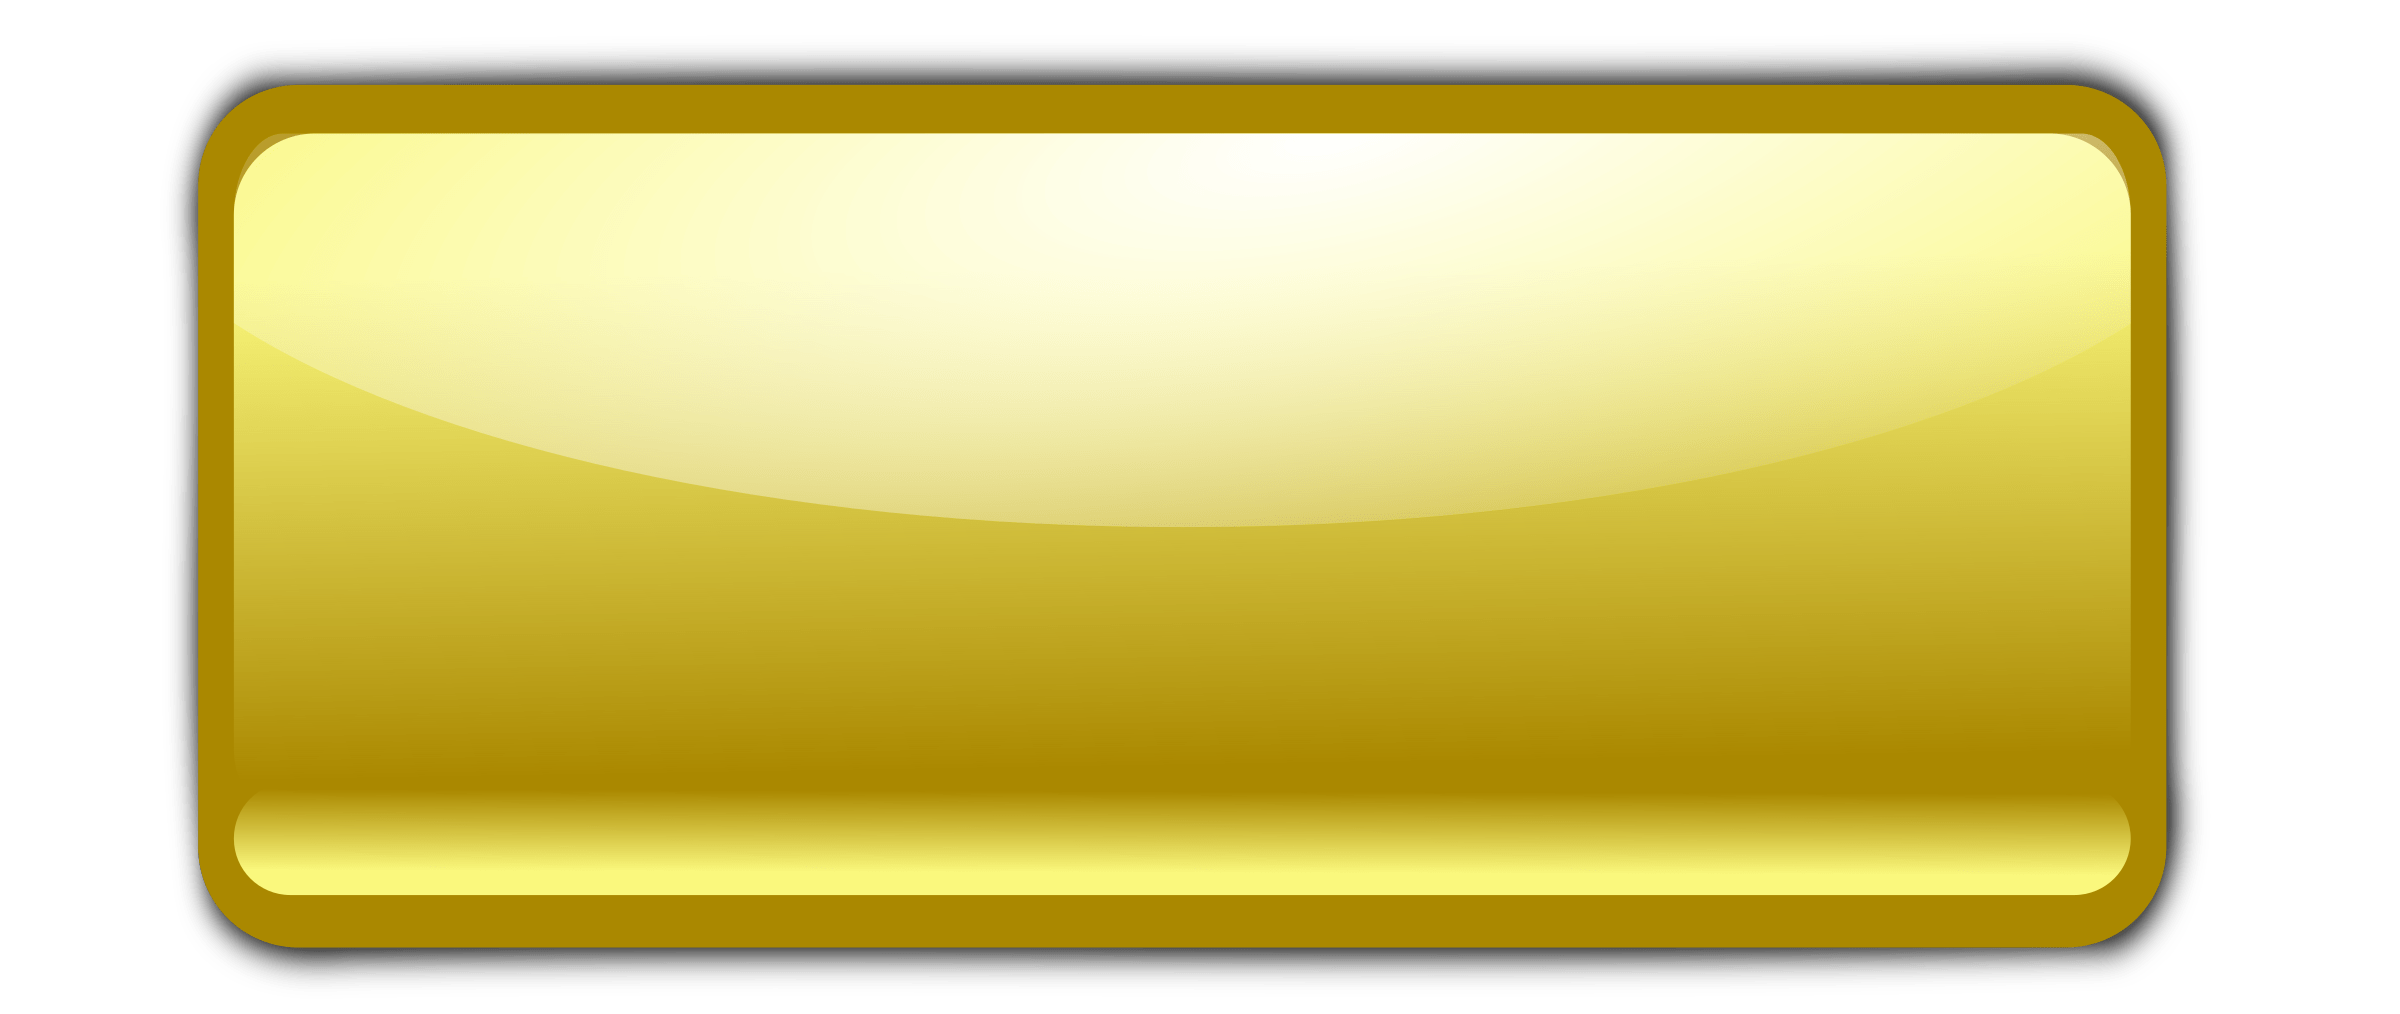 Gold rectangle png. Empty buttons transparent images